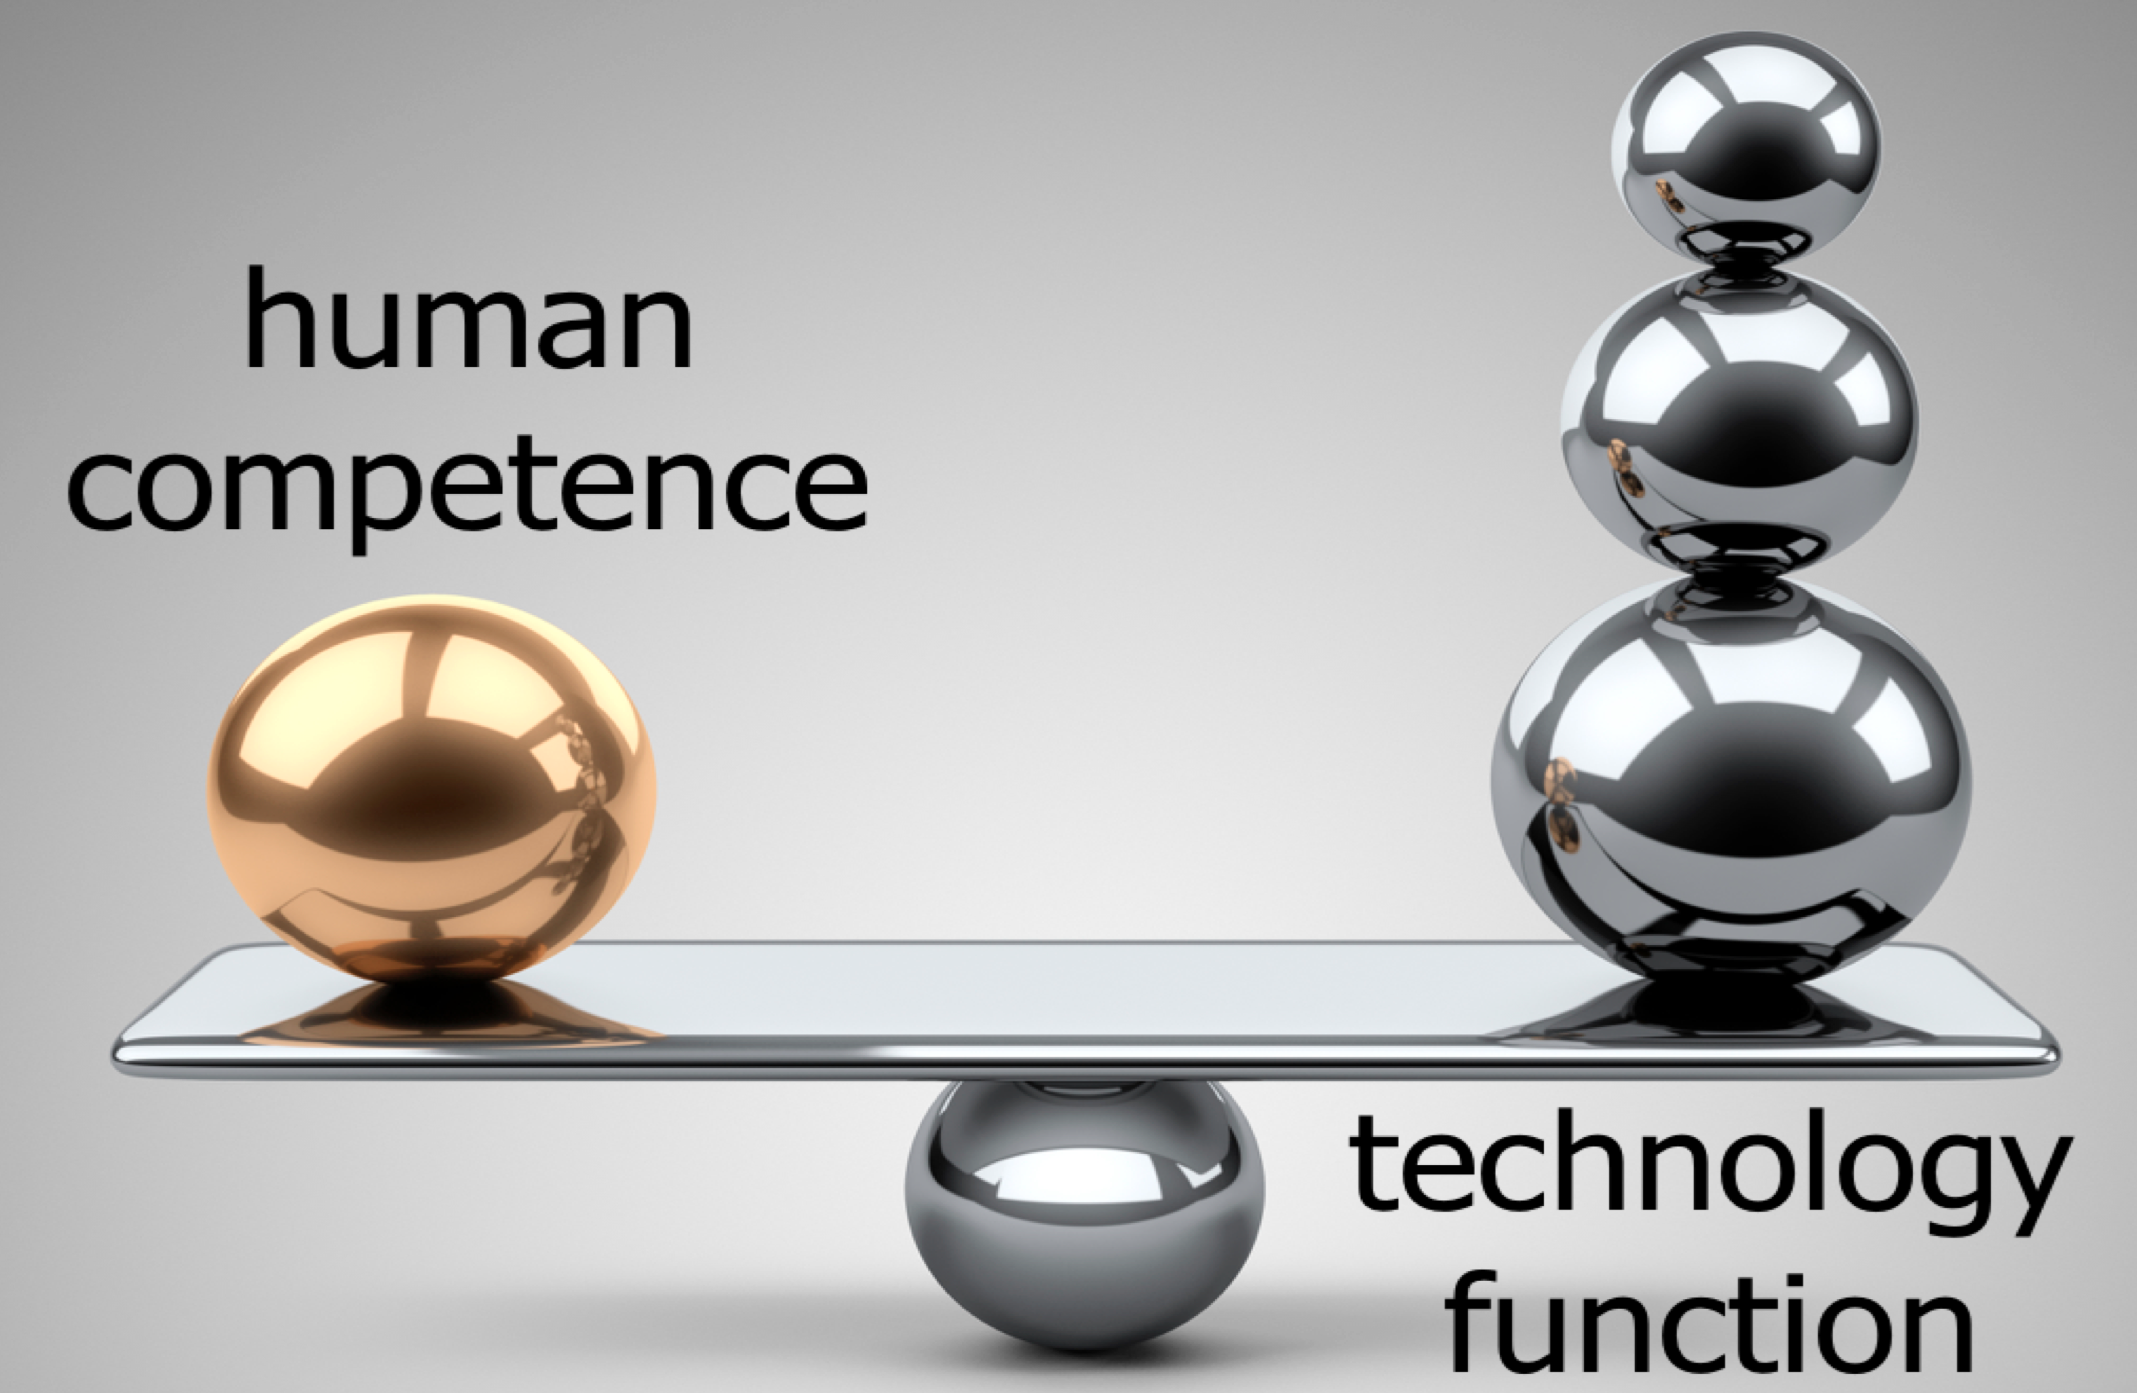 Human Competence Tech Function Ball Balance